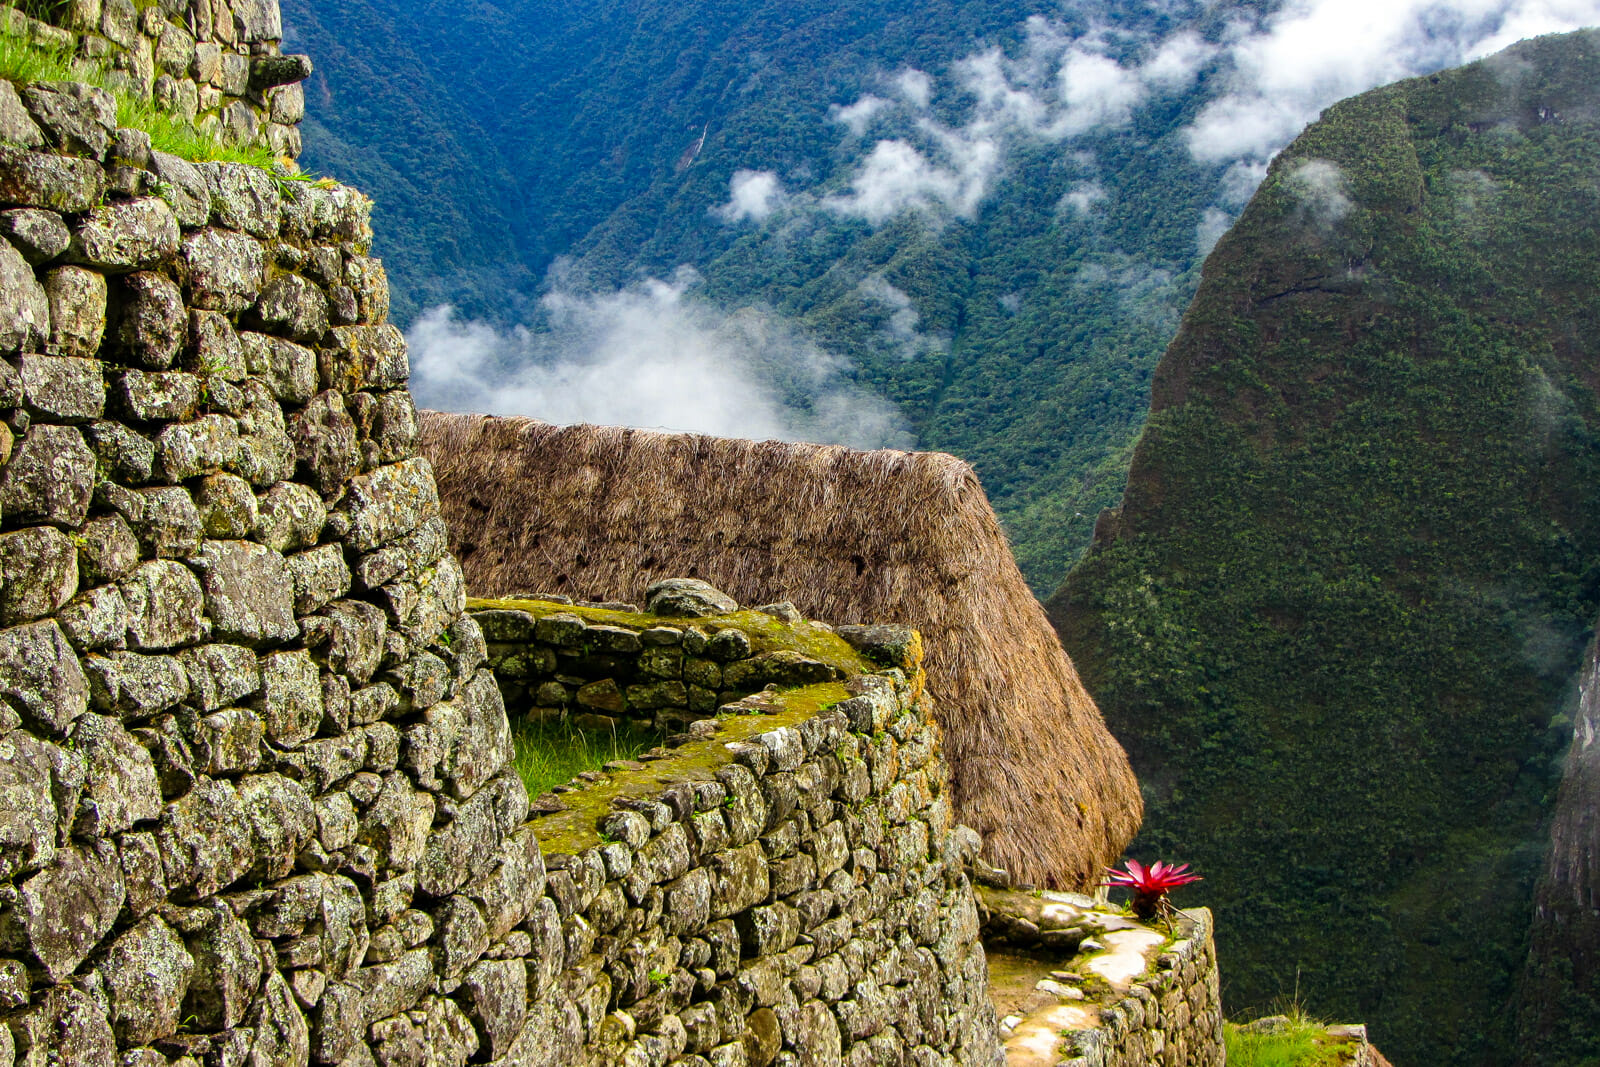 The Inca Ruins at Peru